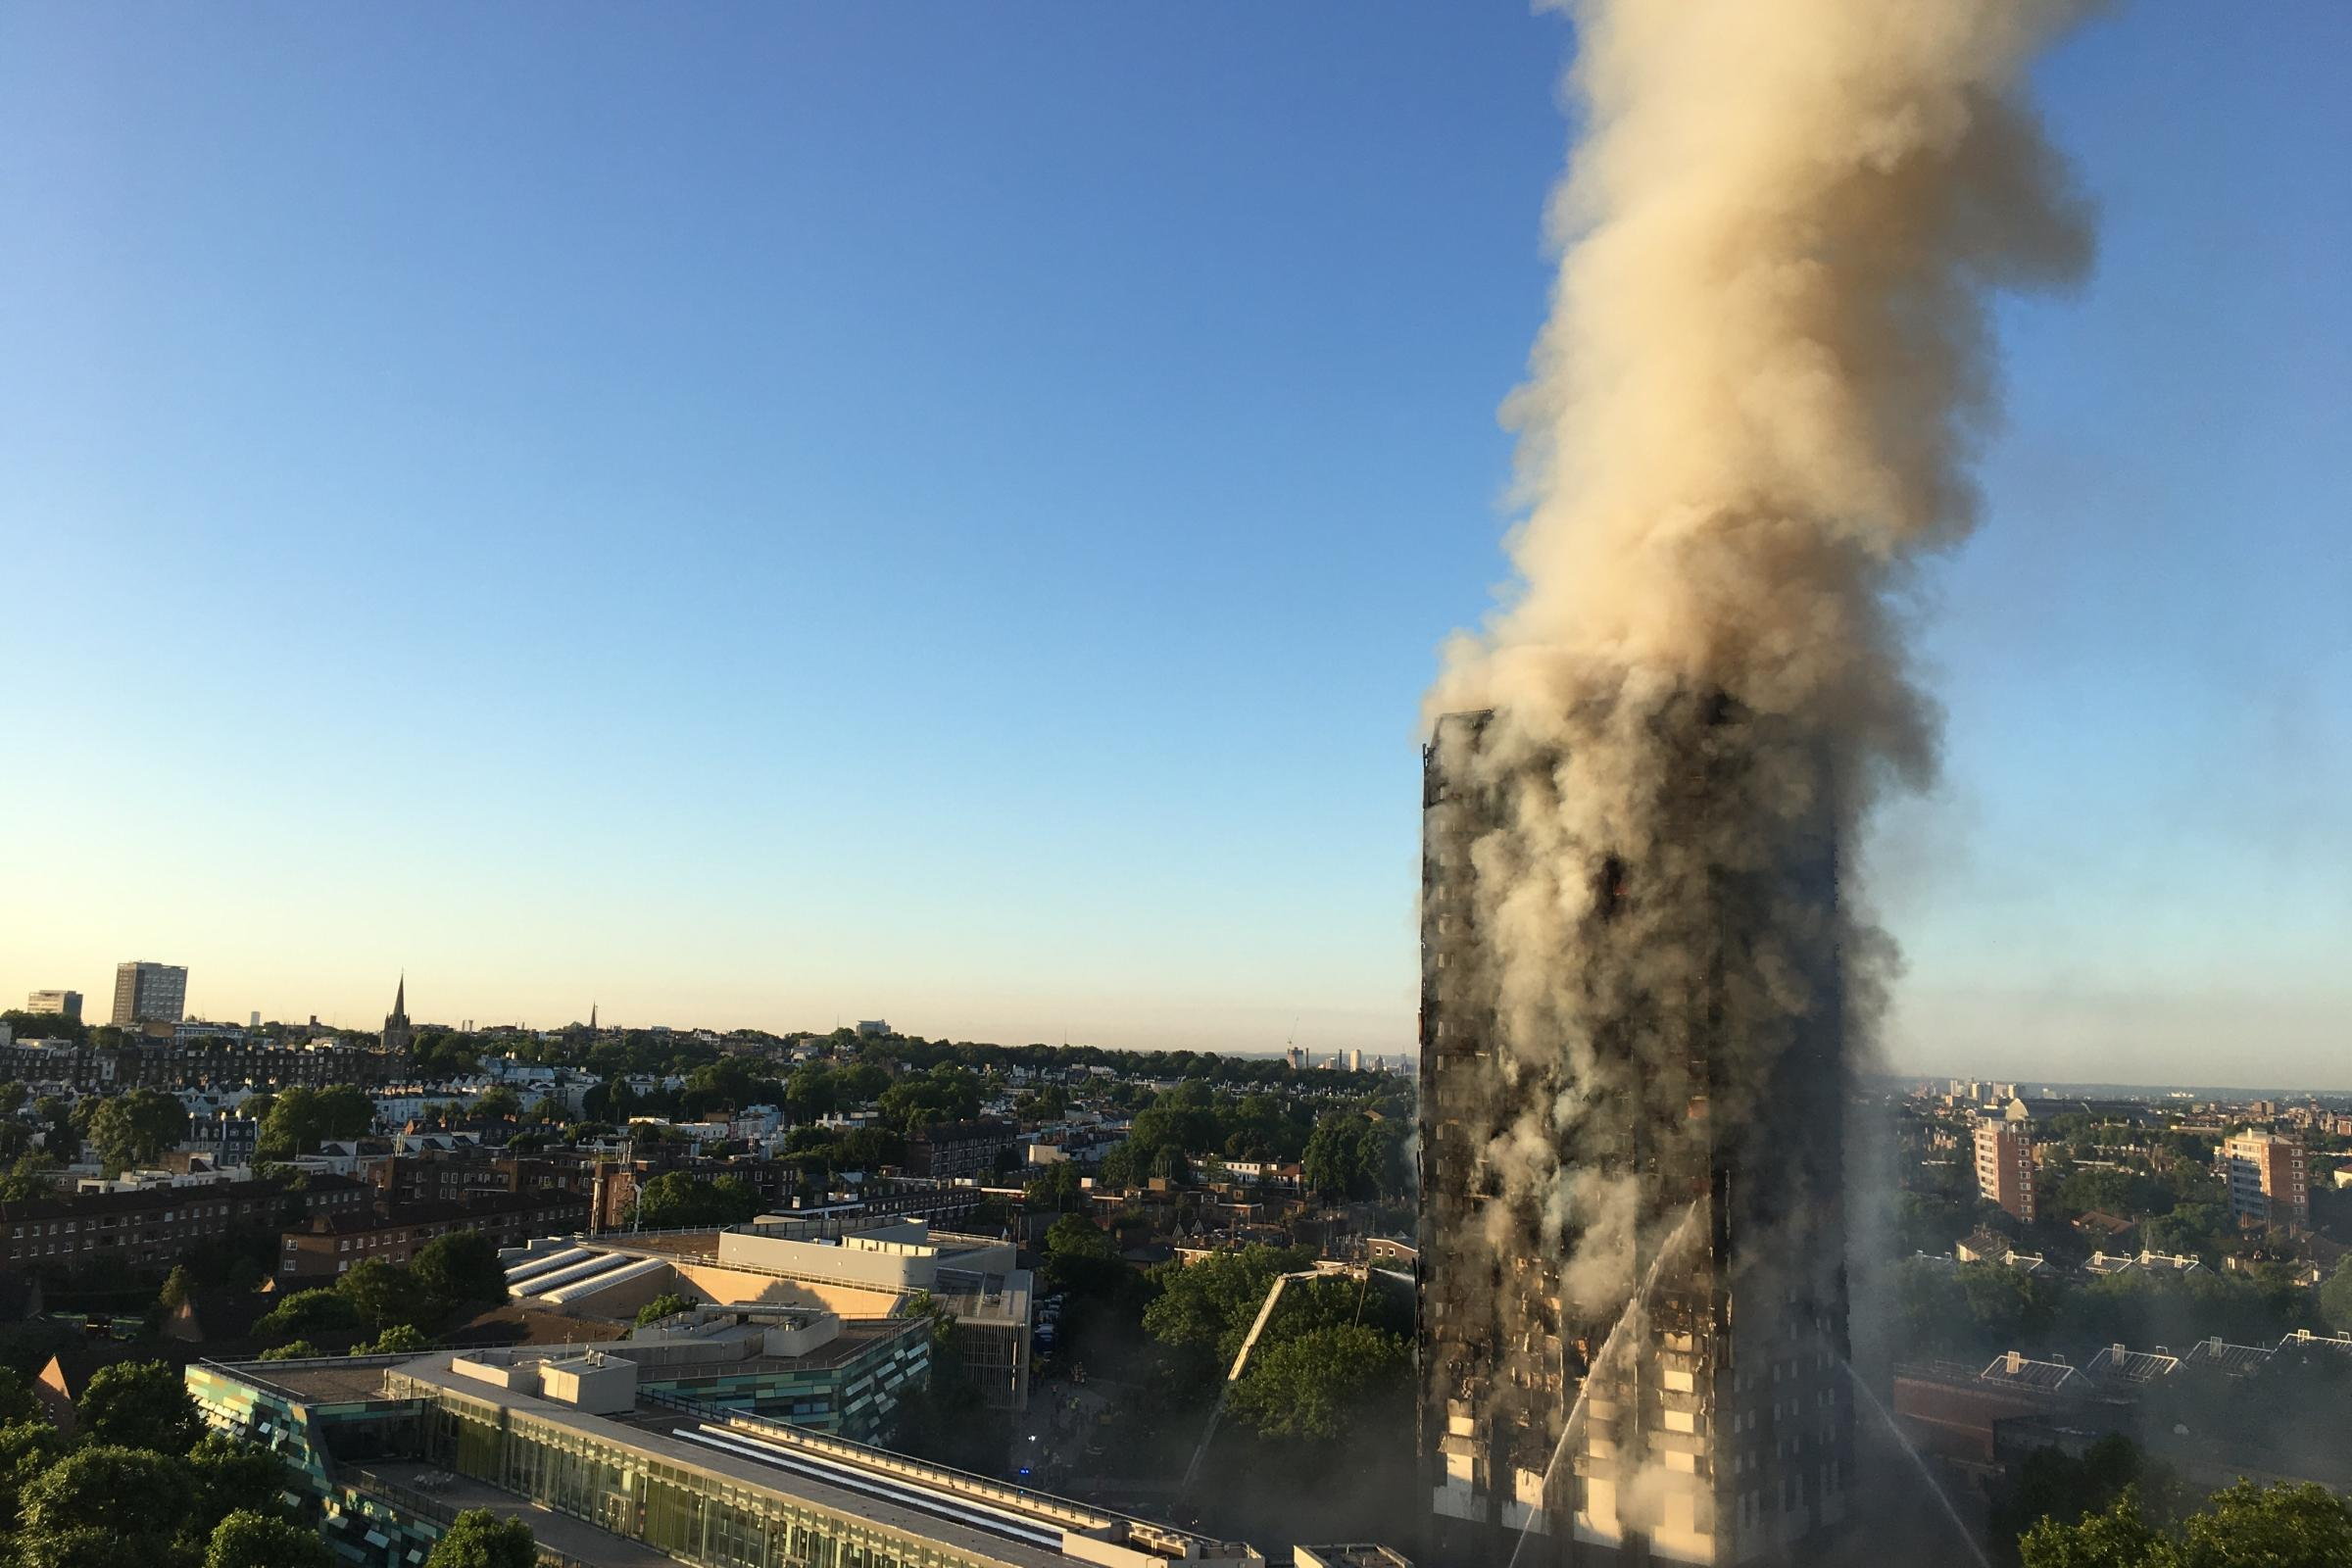 Smoke pours from the fire at Grenfell Tower